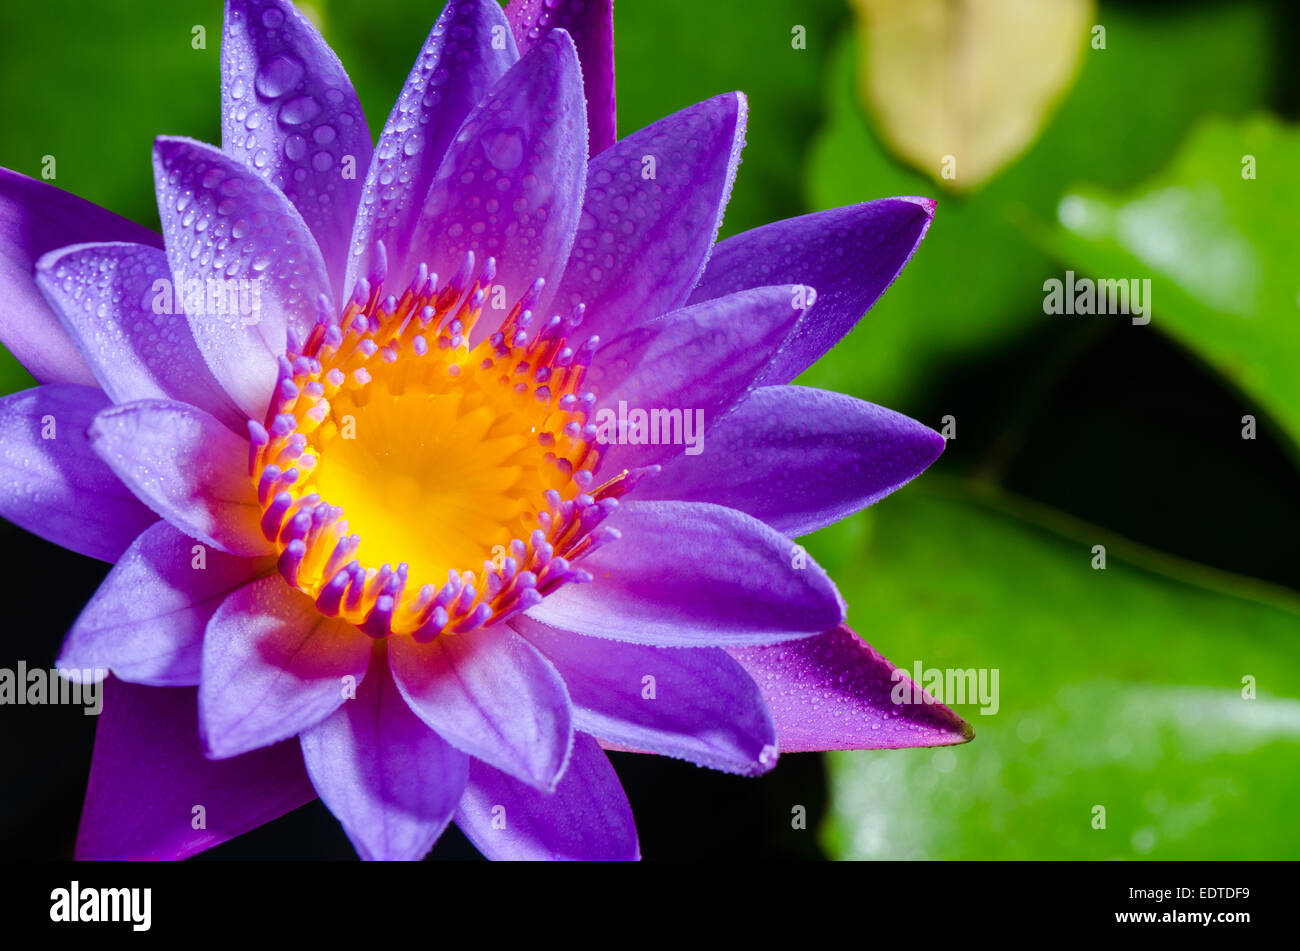 Colorful yellow carpel and water drops on purple lotus flower stock colorful yellow carpel and water drops on purple lotus flower izmirmasajfo